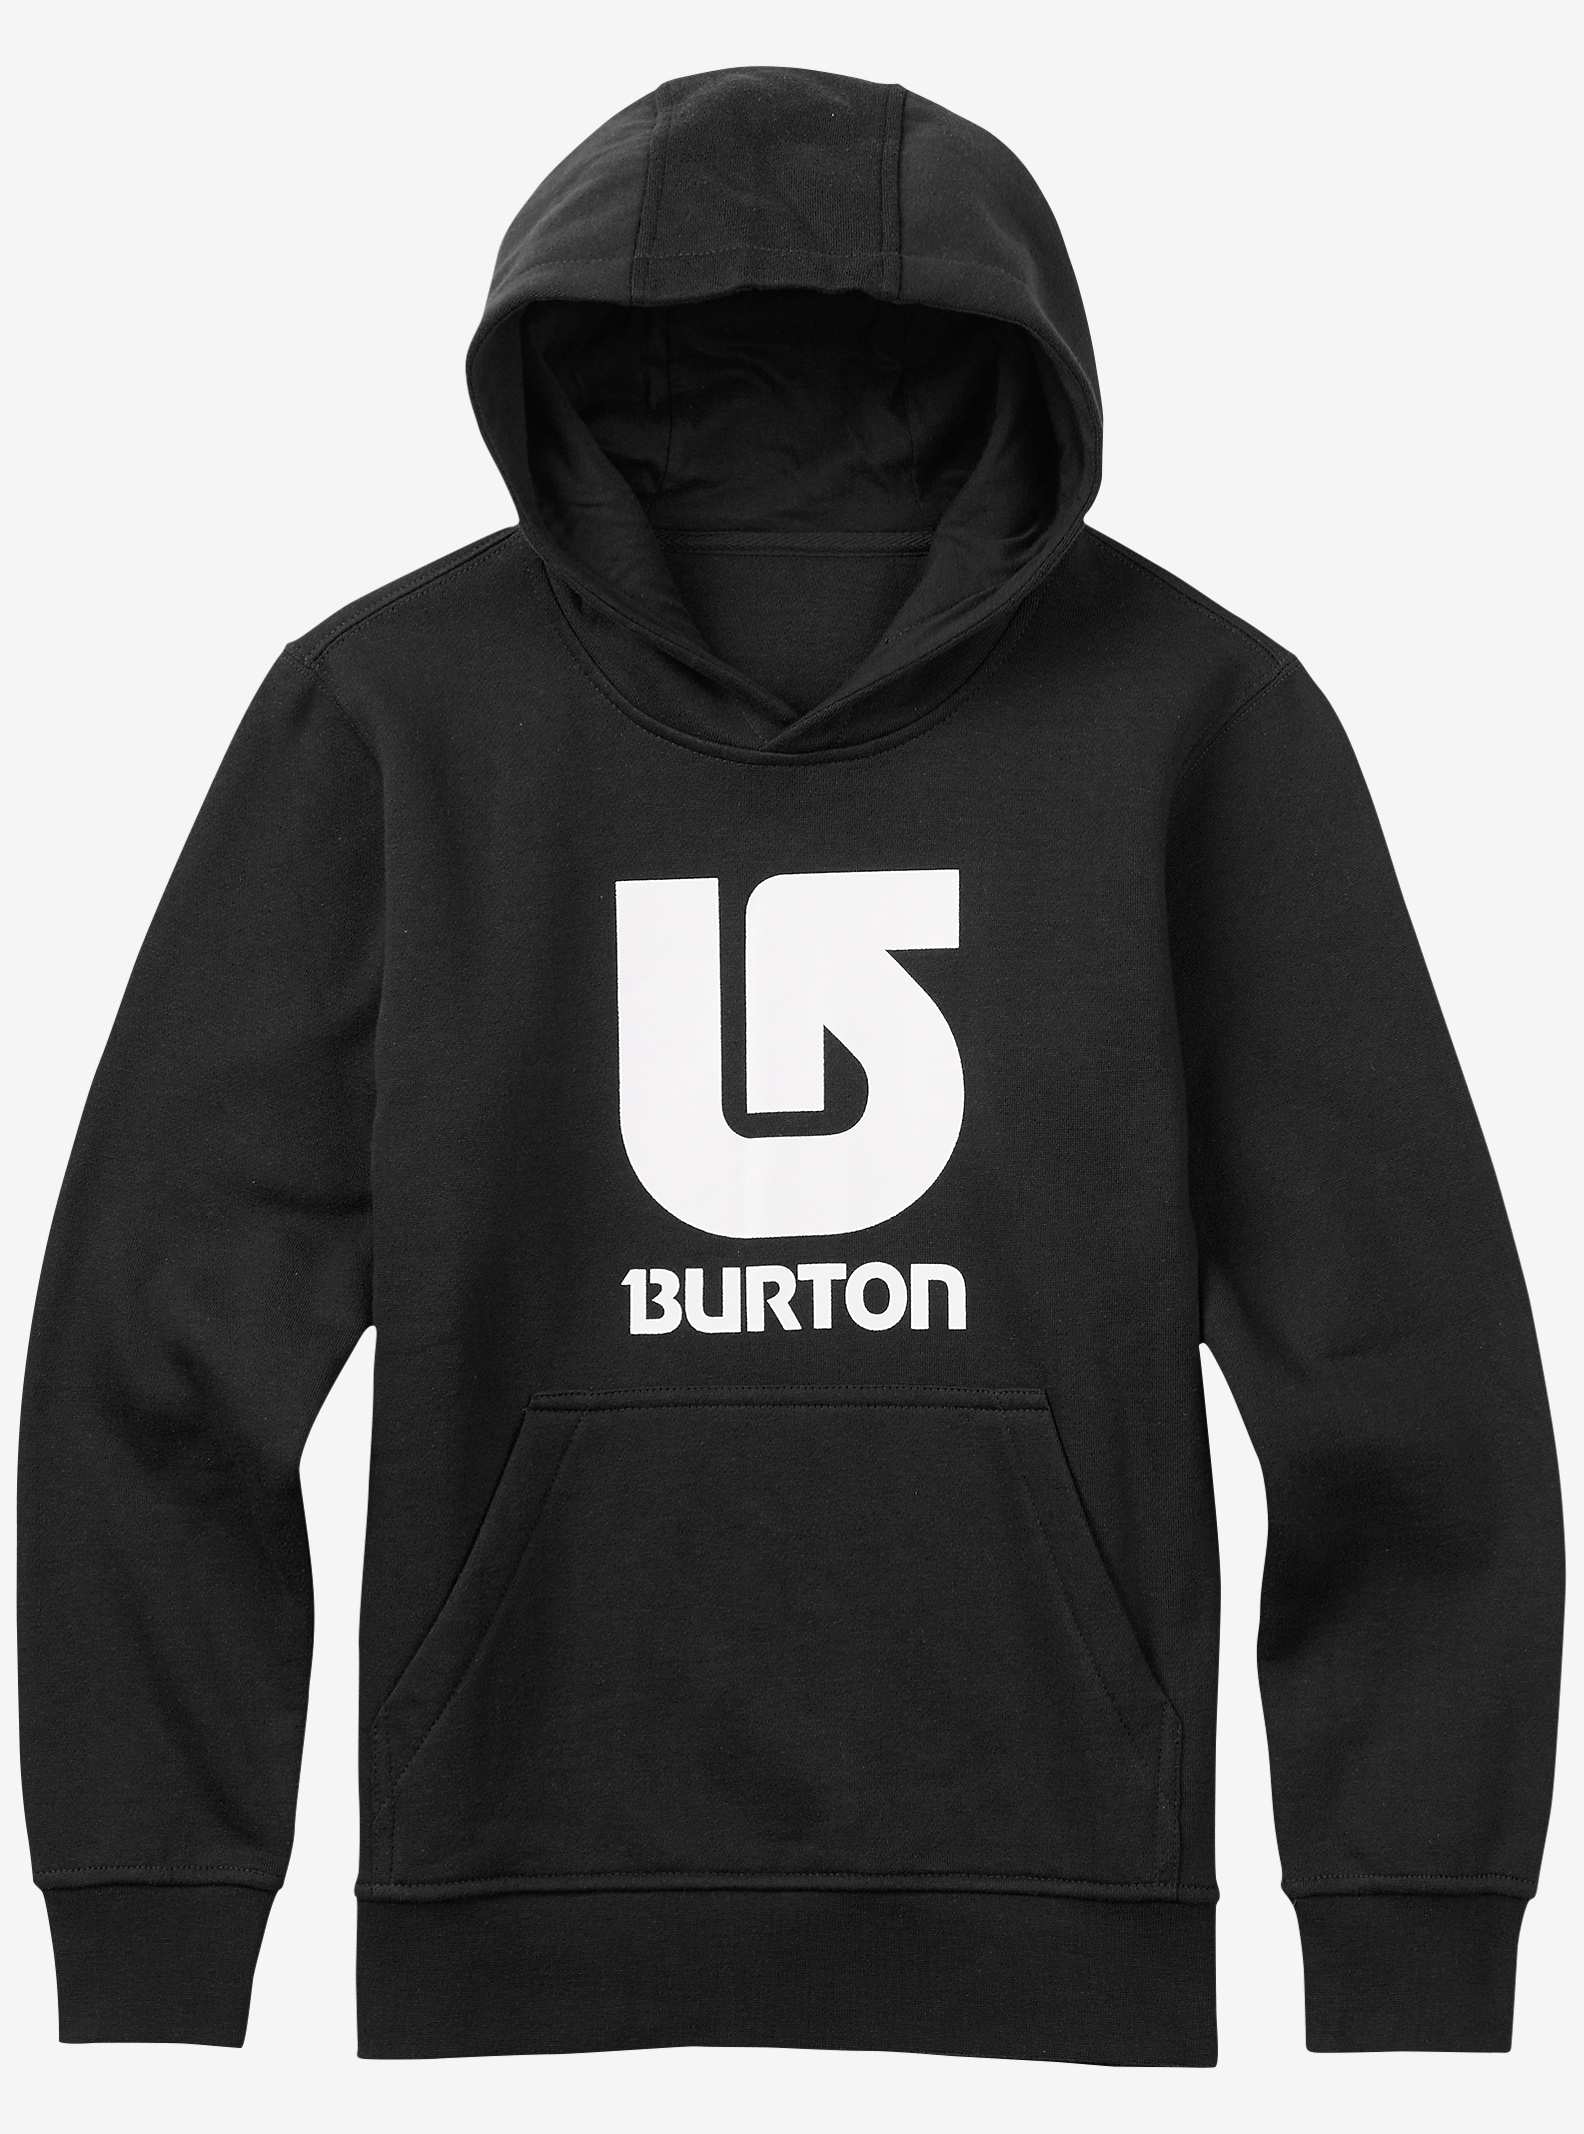 Burton Logo Vertical Pullover Hoodie angezeigt in True Black